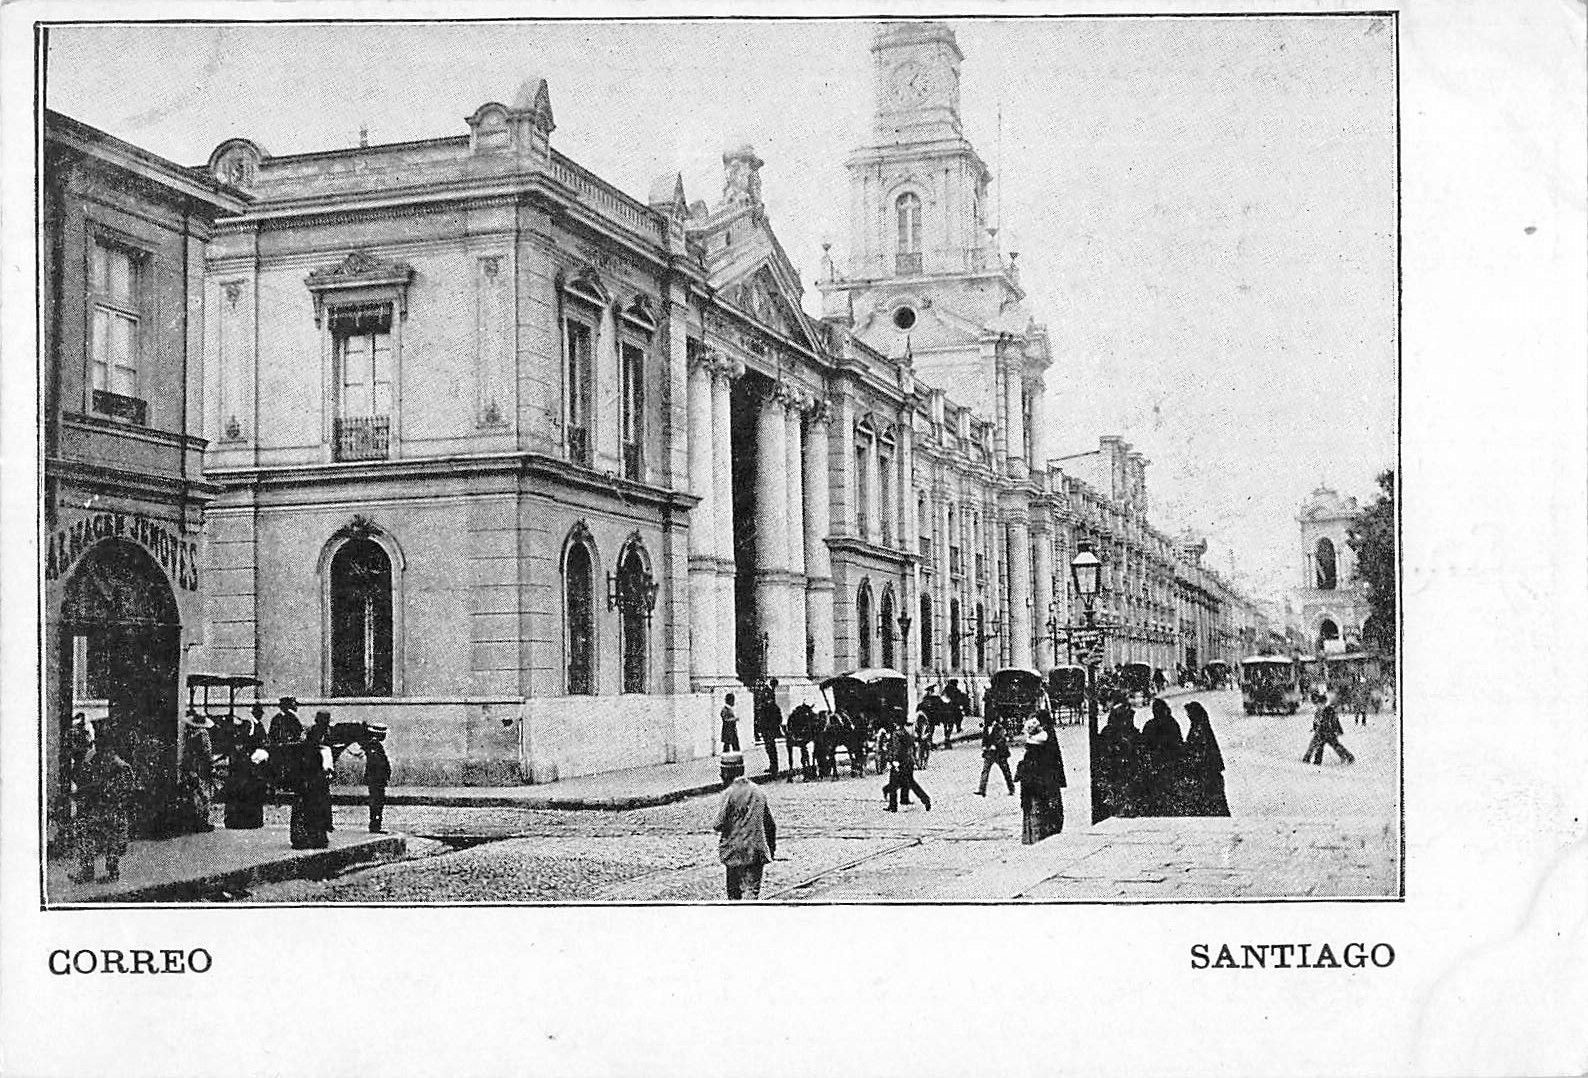 Enterreno - Fotos históricas de chile - fotos antiguas de Chile - Plaza de Armas en 1900